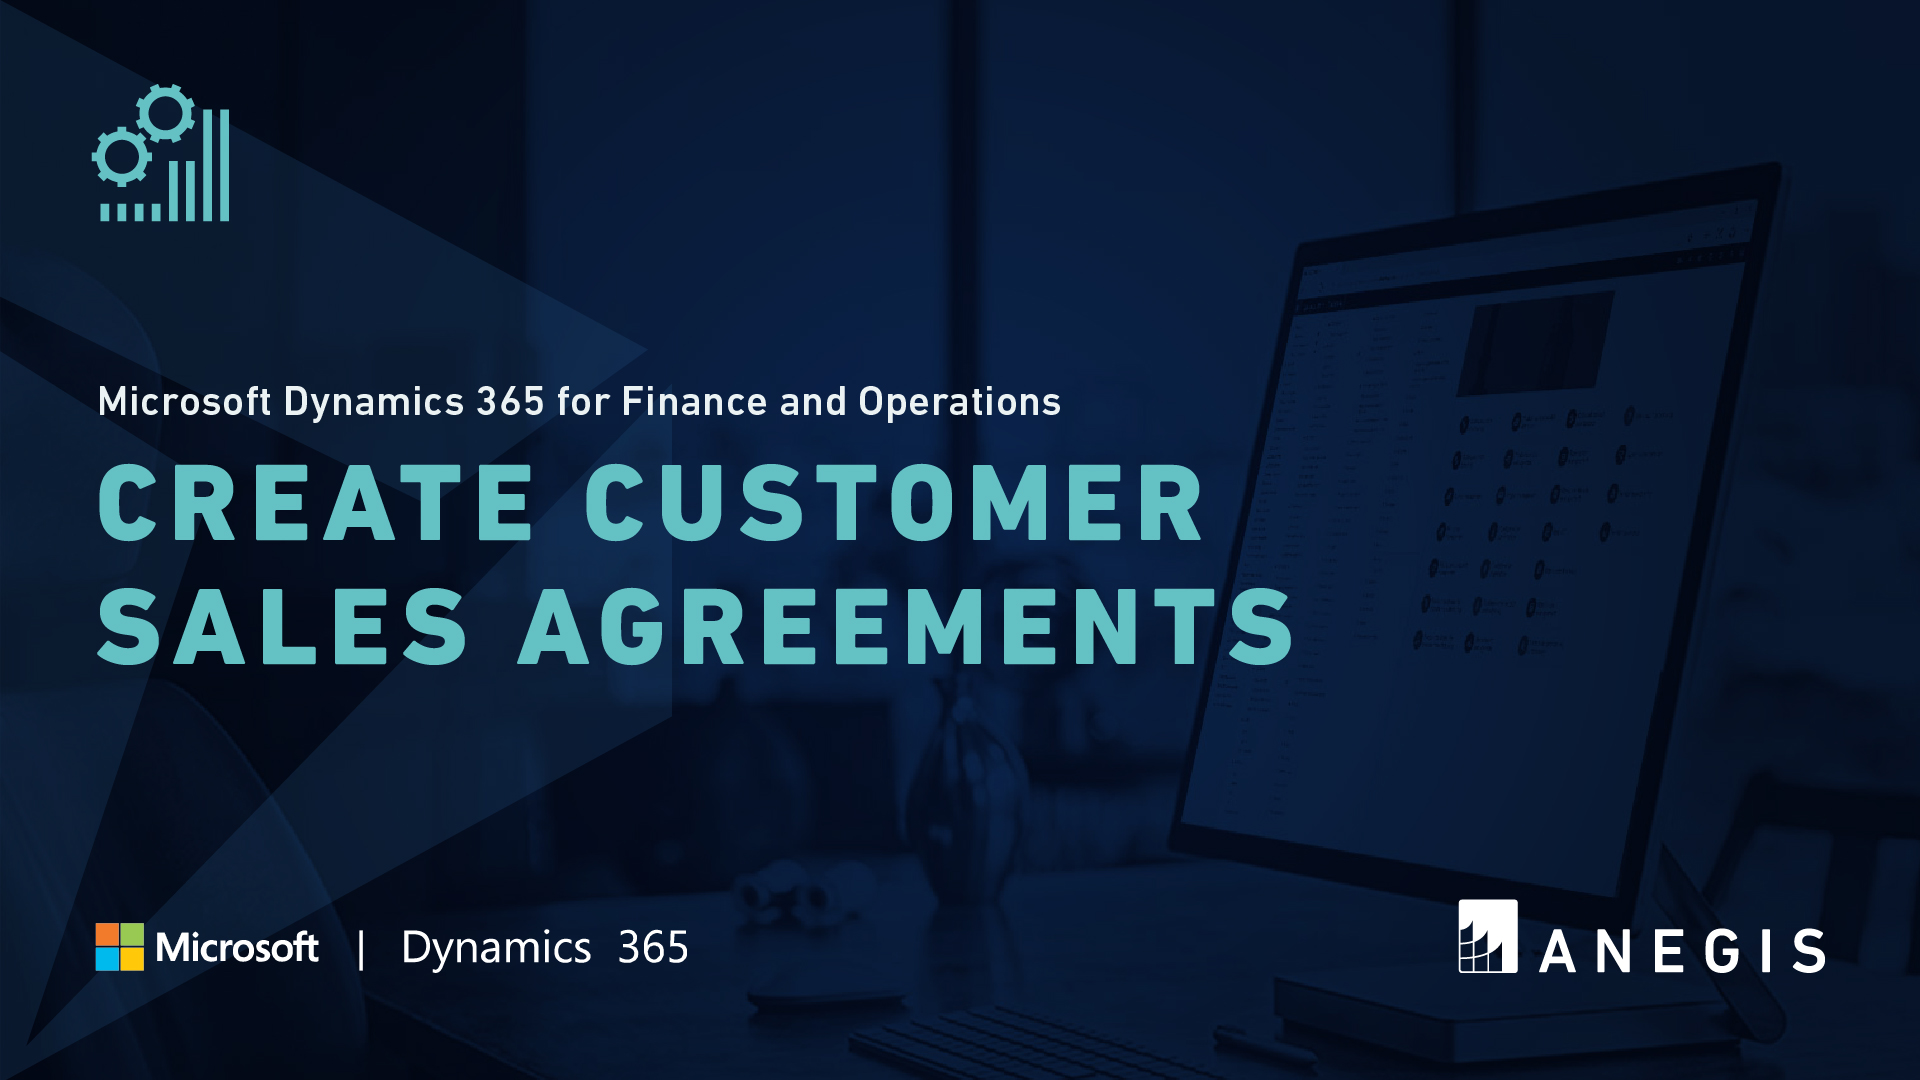 D365 F&O: Create Customer Sales Agreements